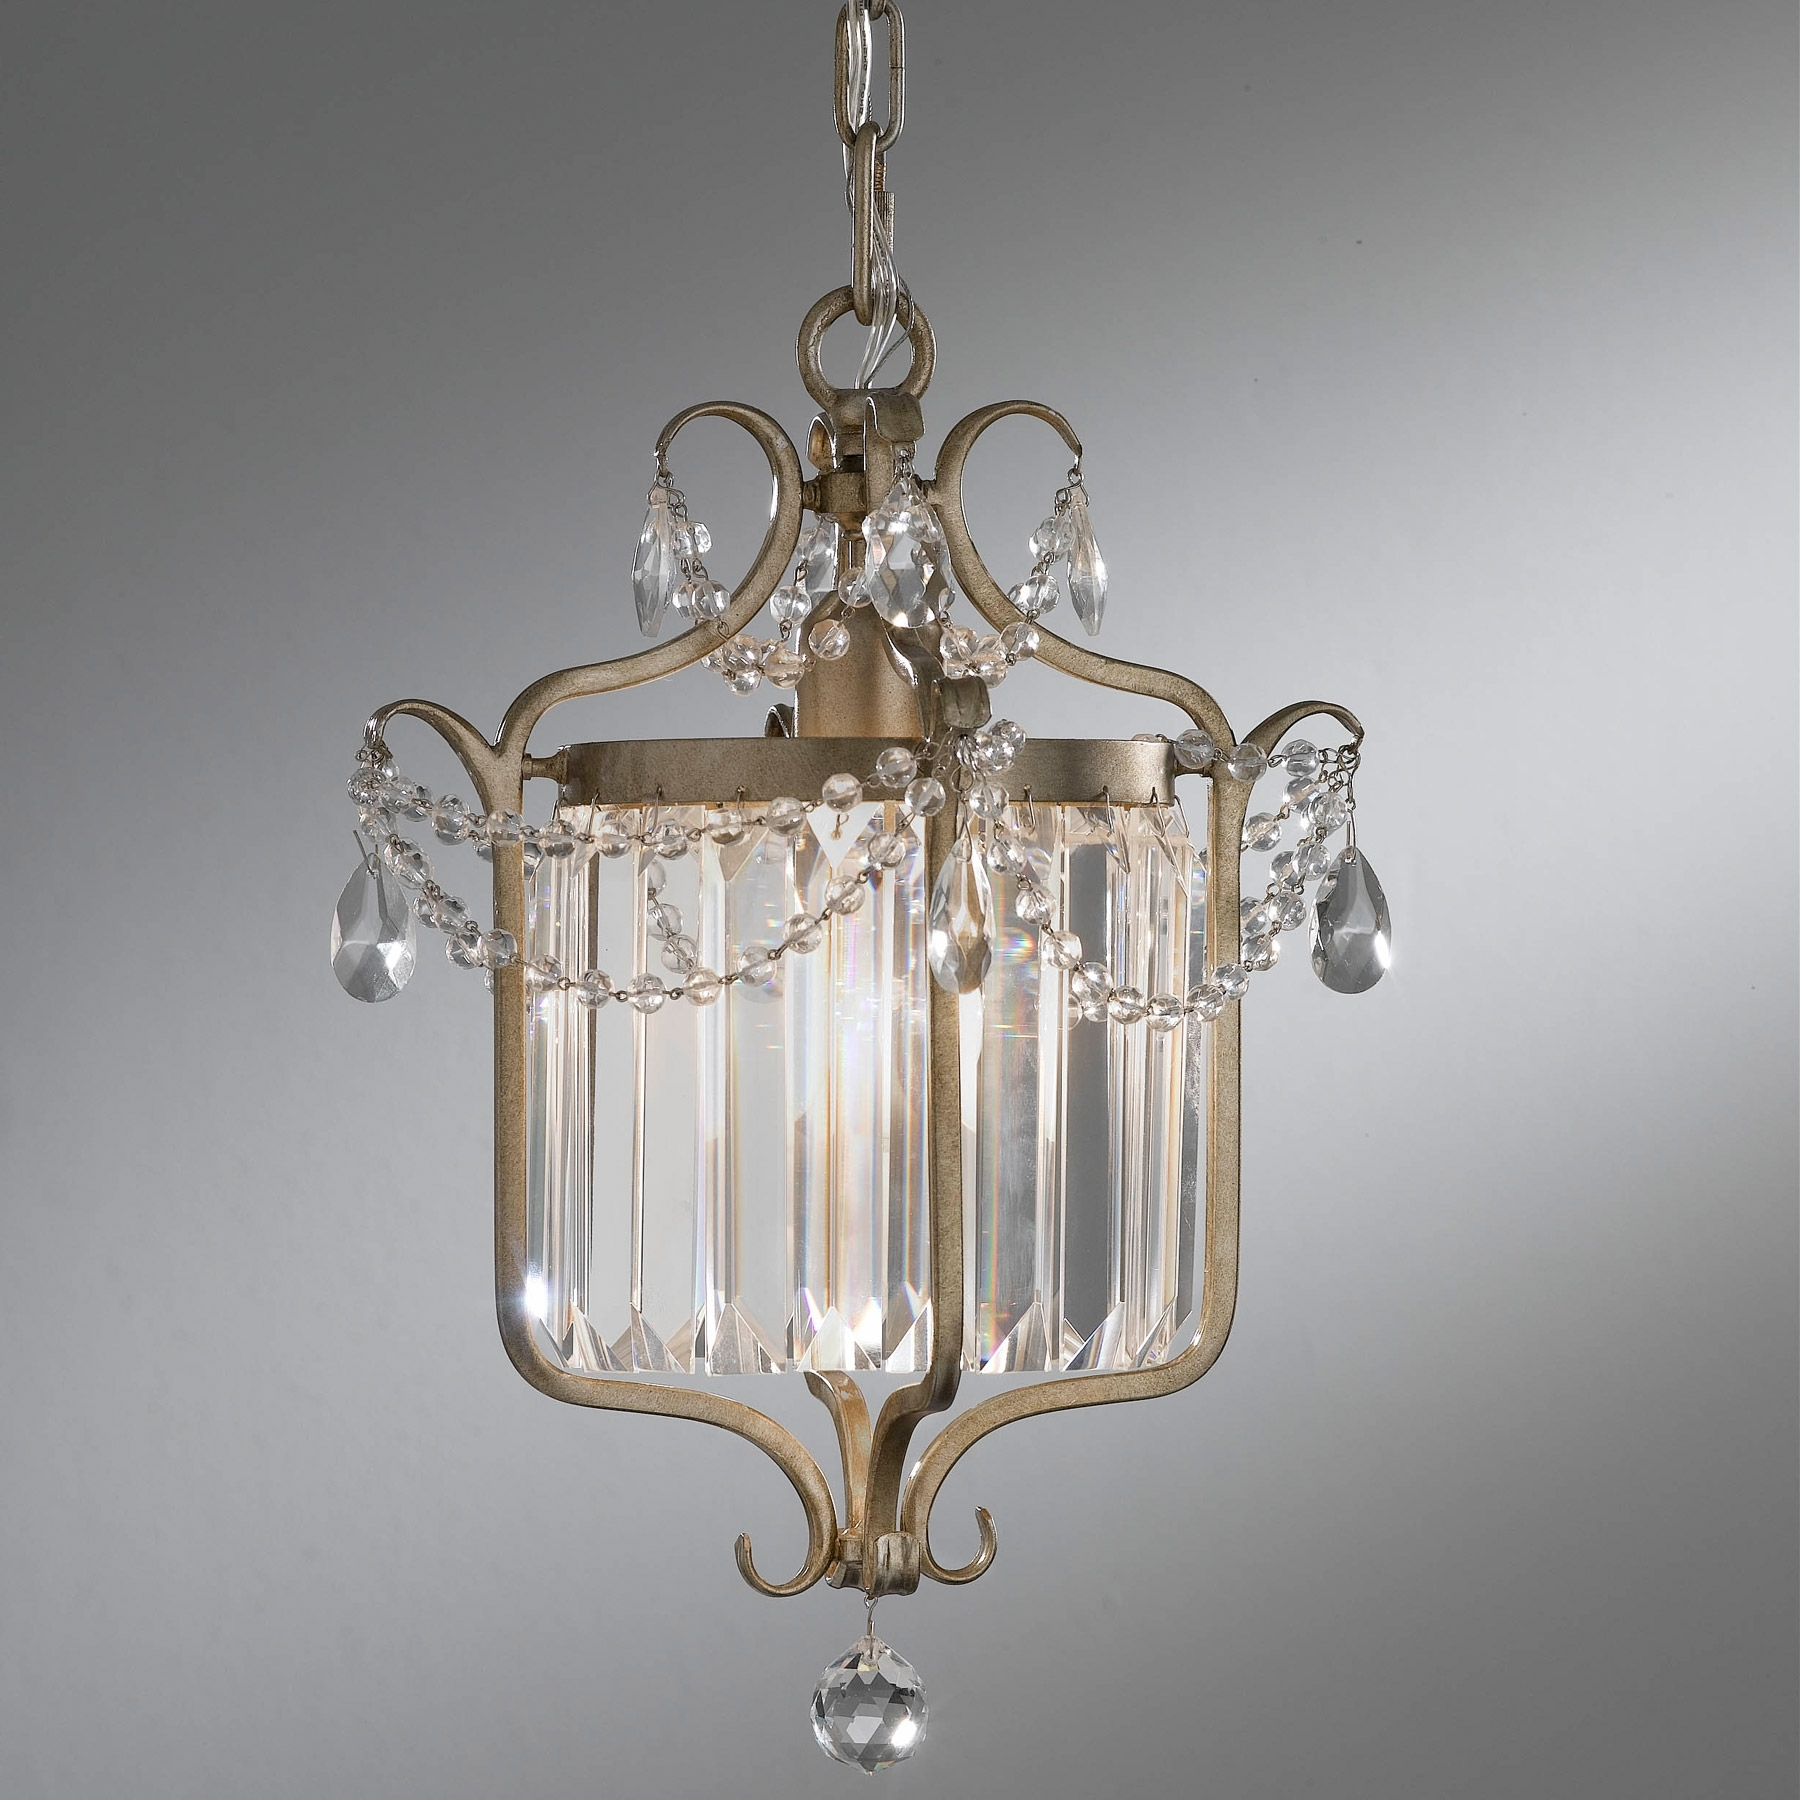 Well Liked F2473/1Gs Crystal Gianna Mini Chandelier With Regard To Gianna Mini Chandeliers (View 12 of 15)